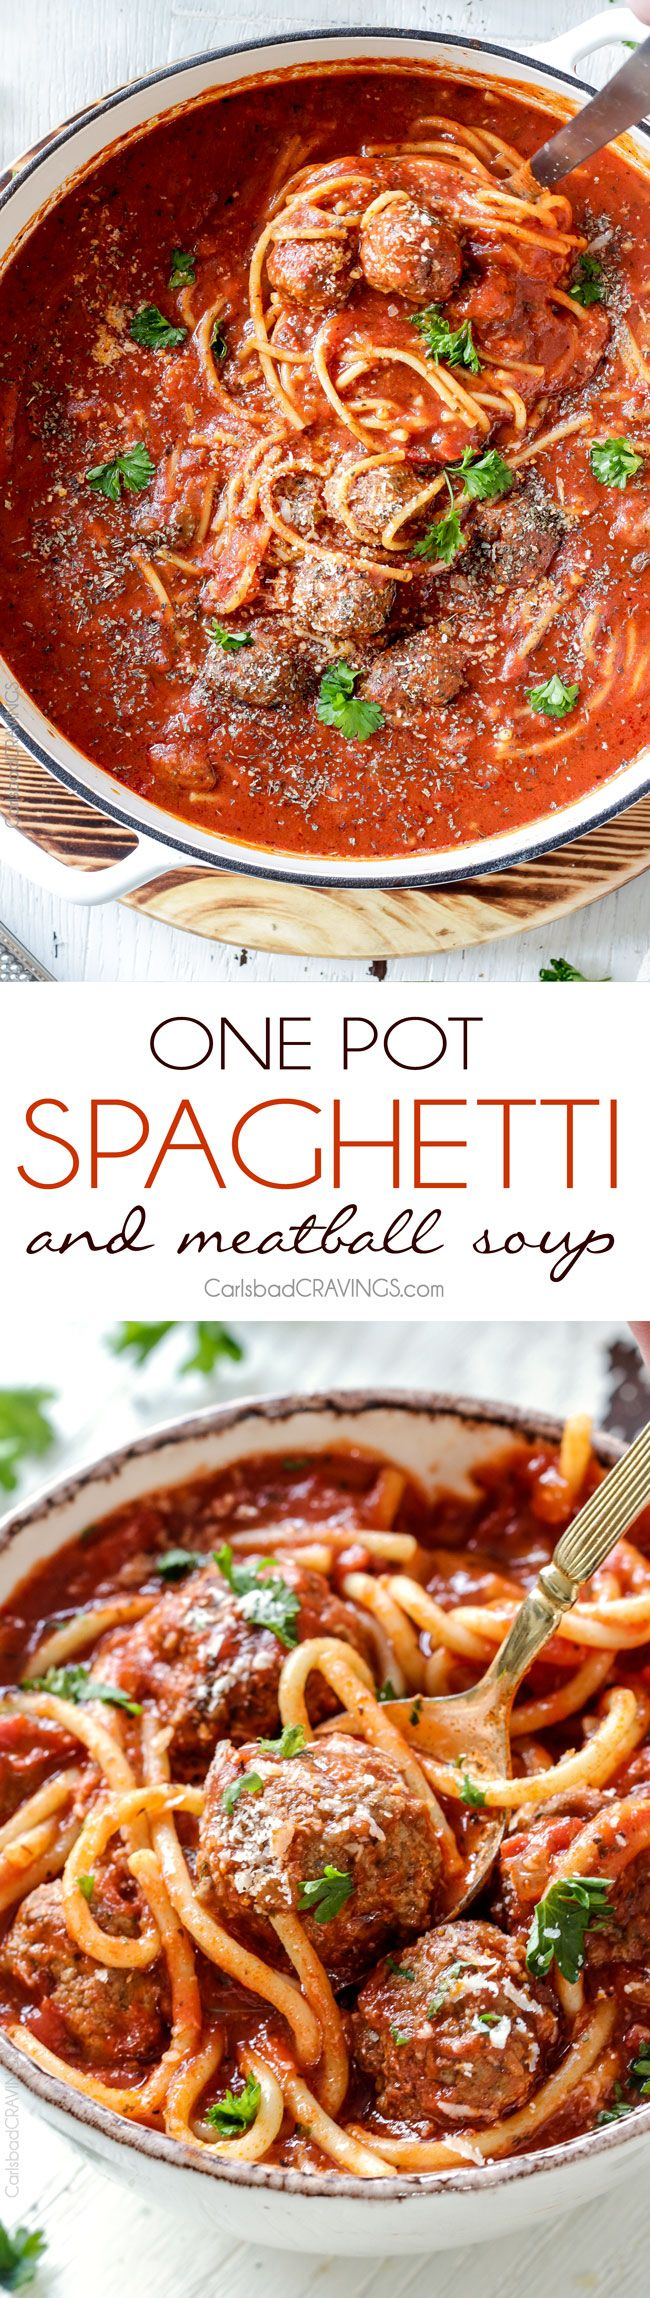 Easy ONE POT Spaghetti and Meatball Soup is the most delicious way to eat spaghetti! and the Parmesan meatballs are out of this world!